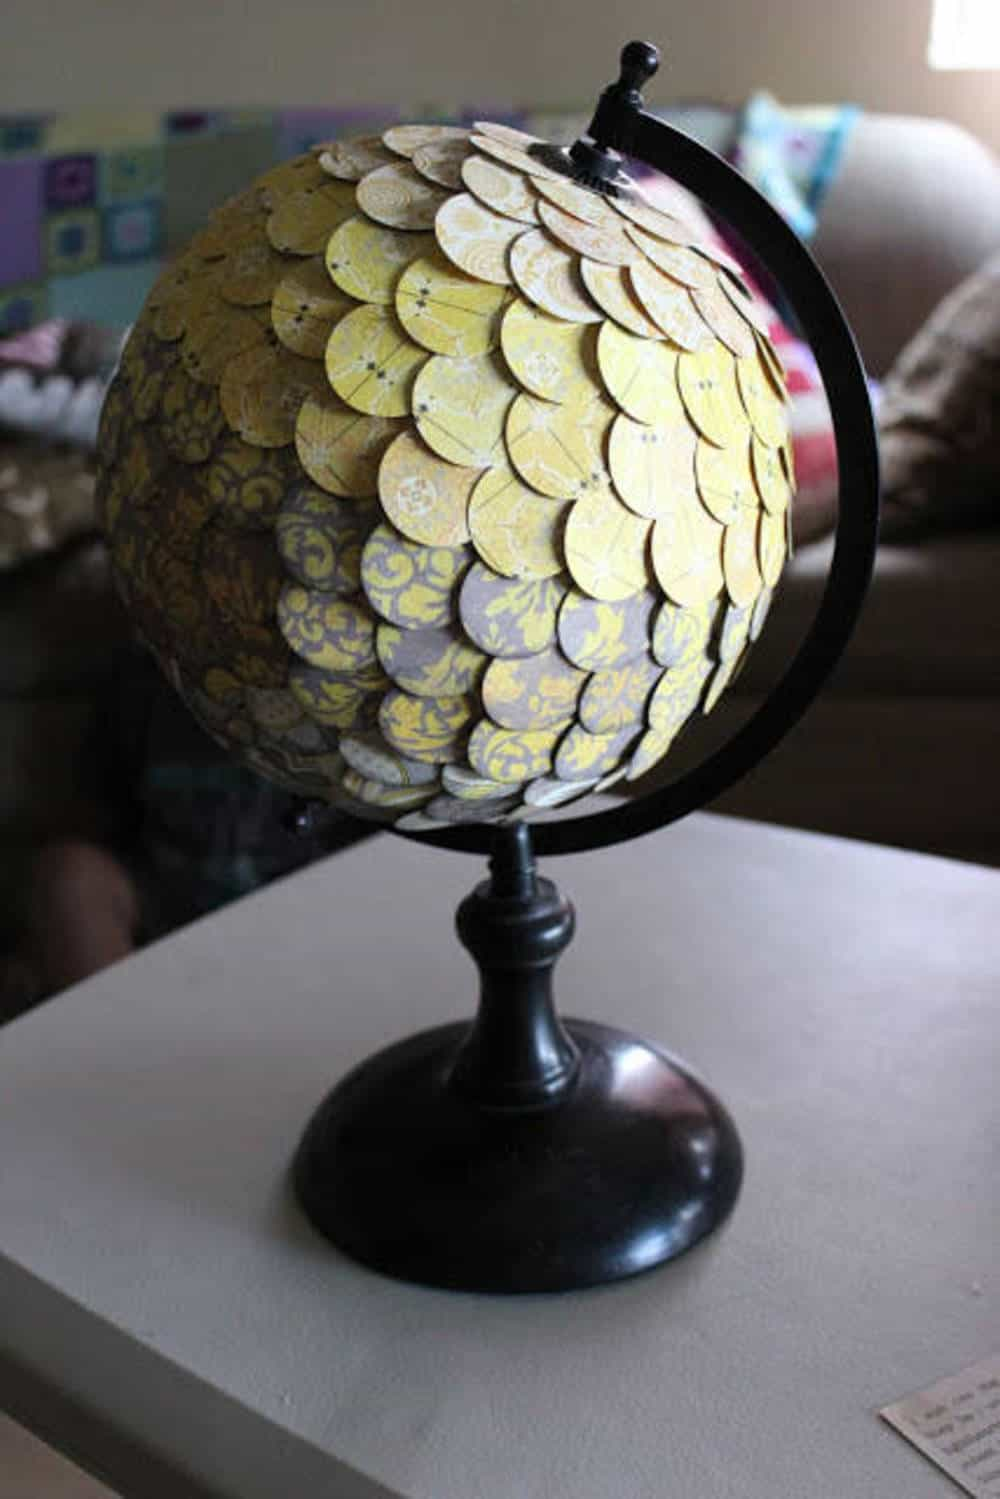 Layered, patterned cut out circles globe